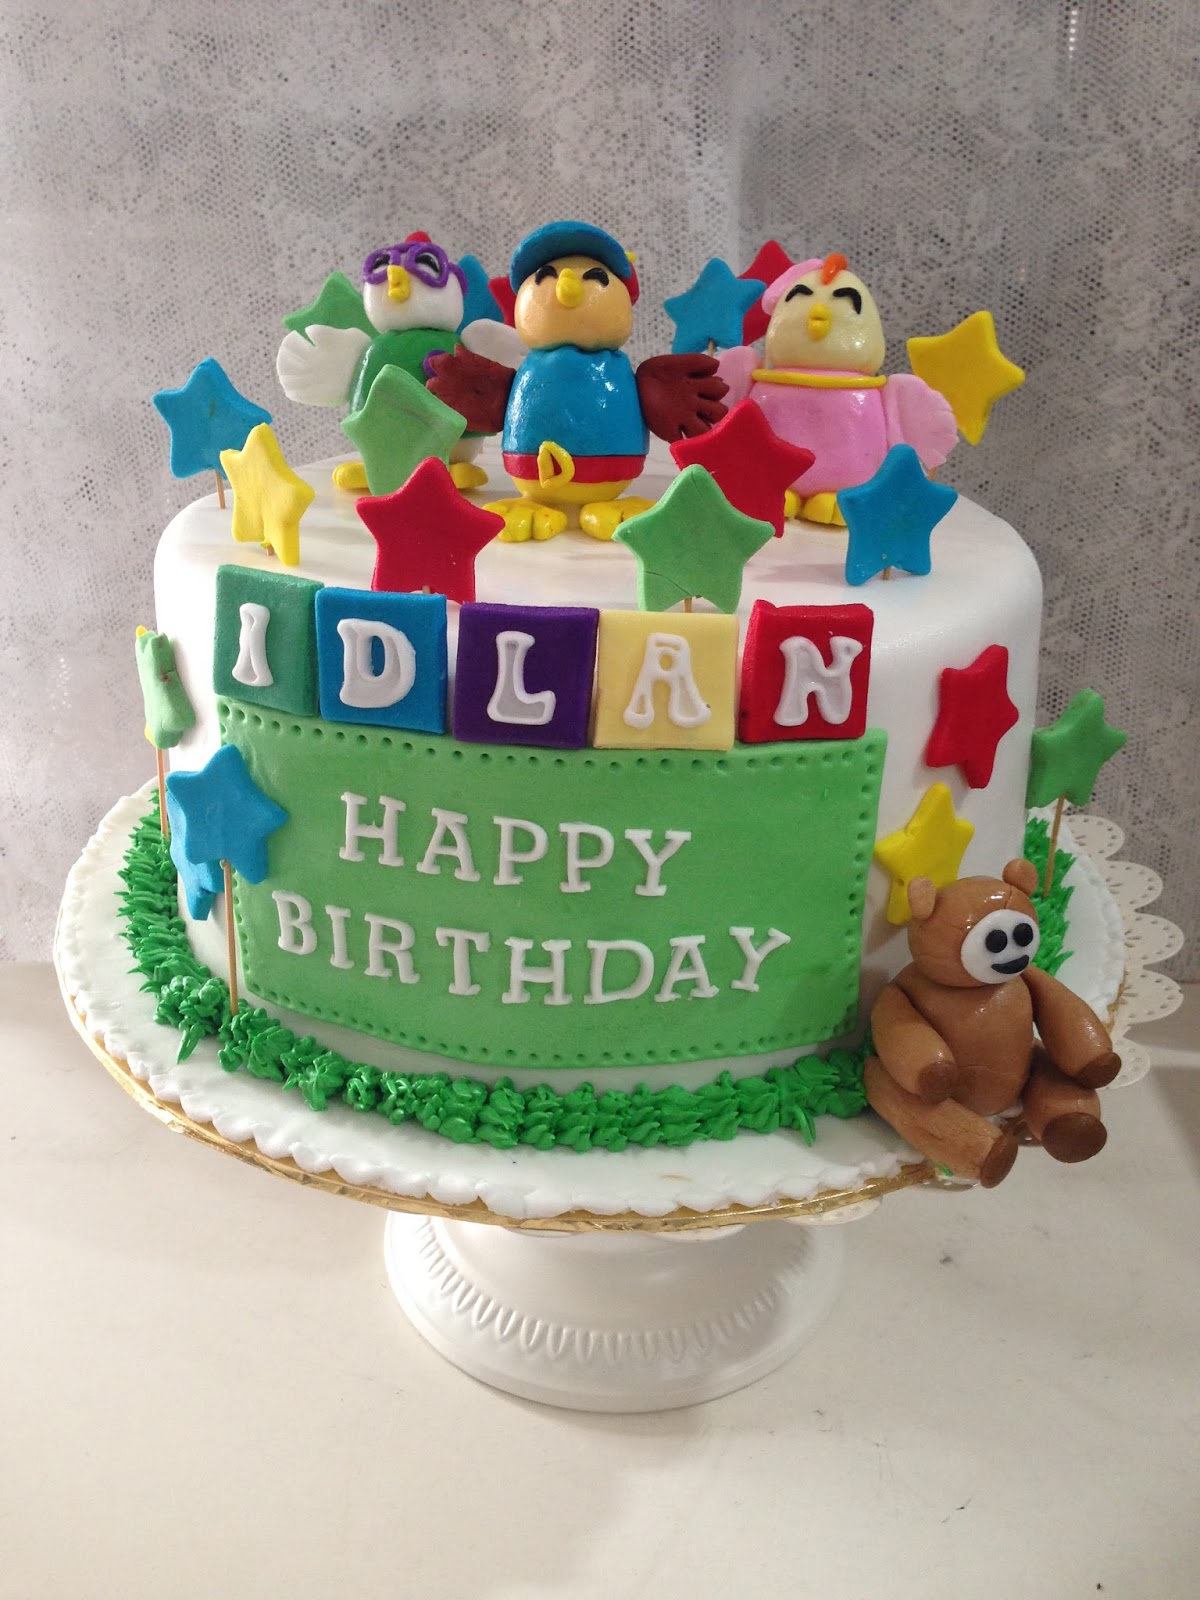 Images Of Birthday Cake For Didi : ninie cakes house: Didi and Friends Fondant Cake